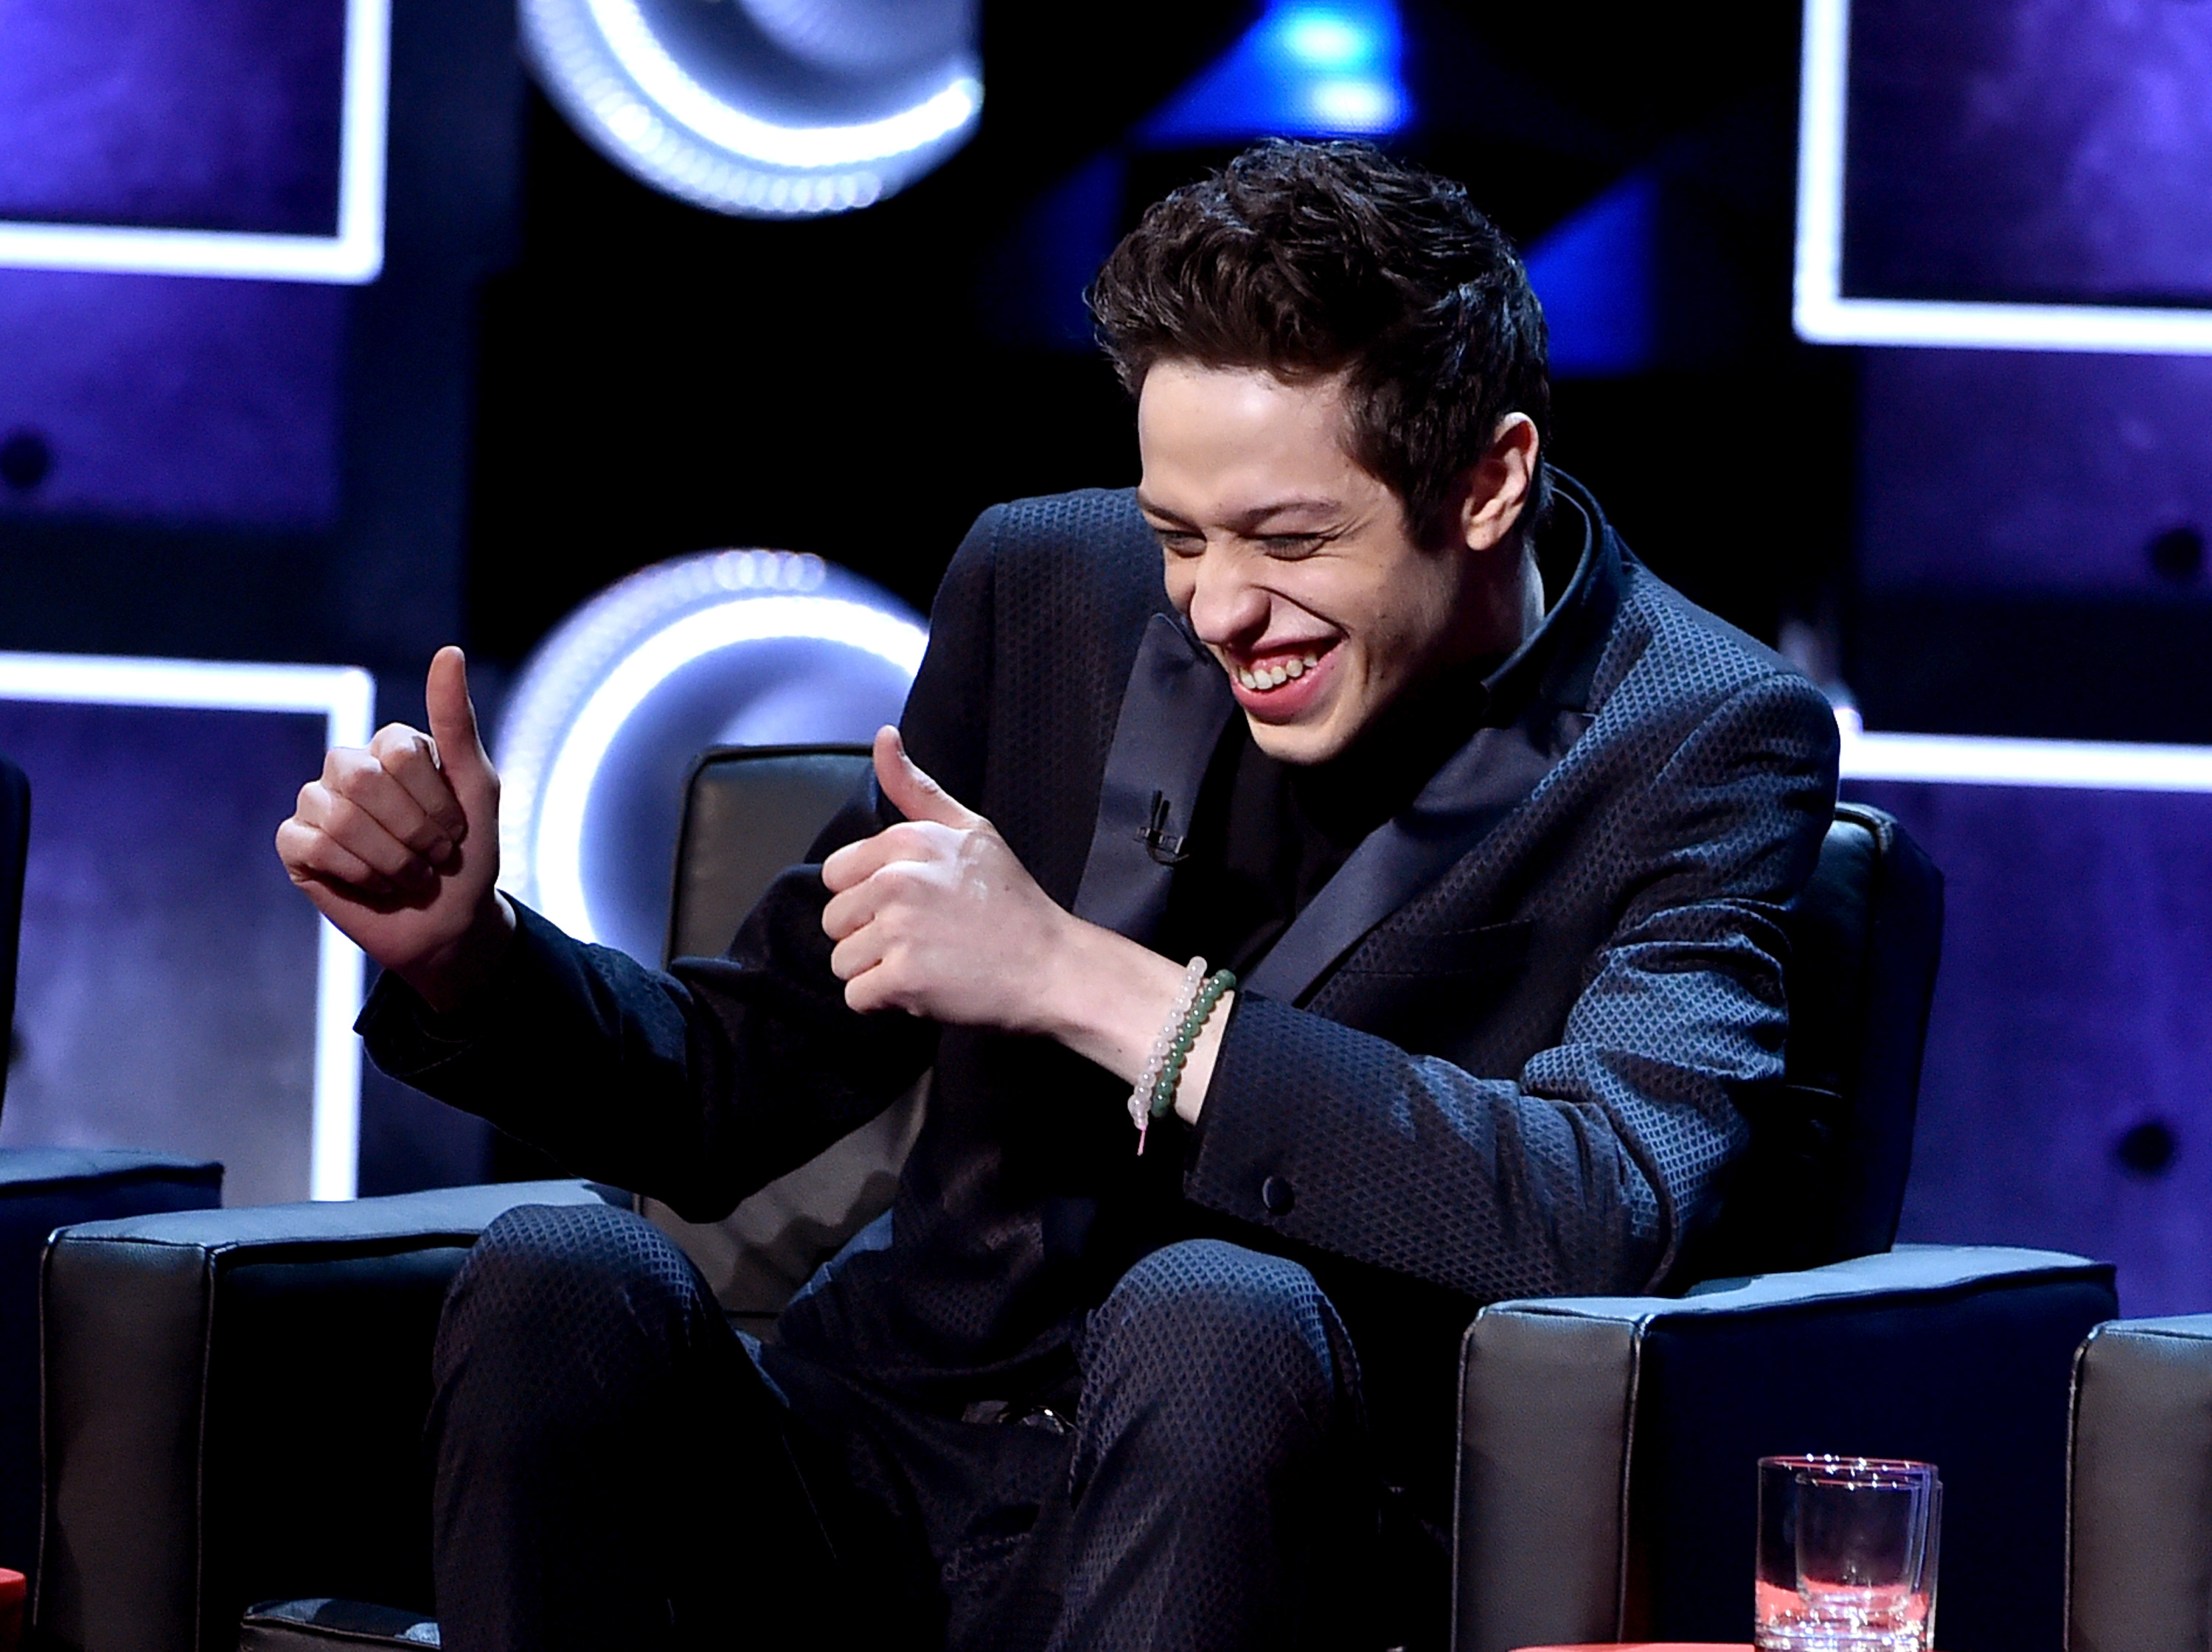 Pete Davidson Comedy Central Roast Justin Bieber